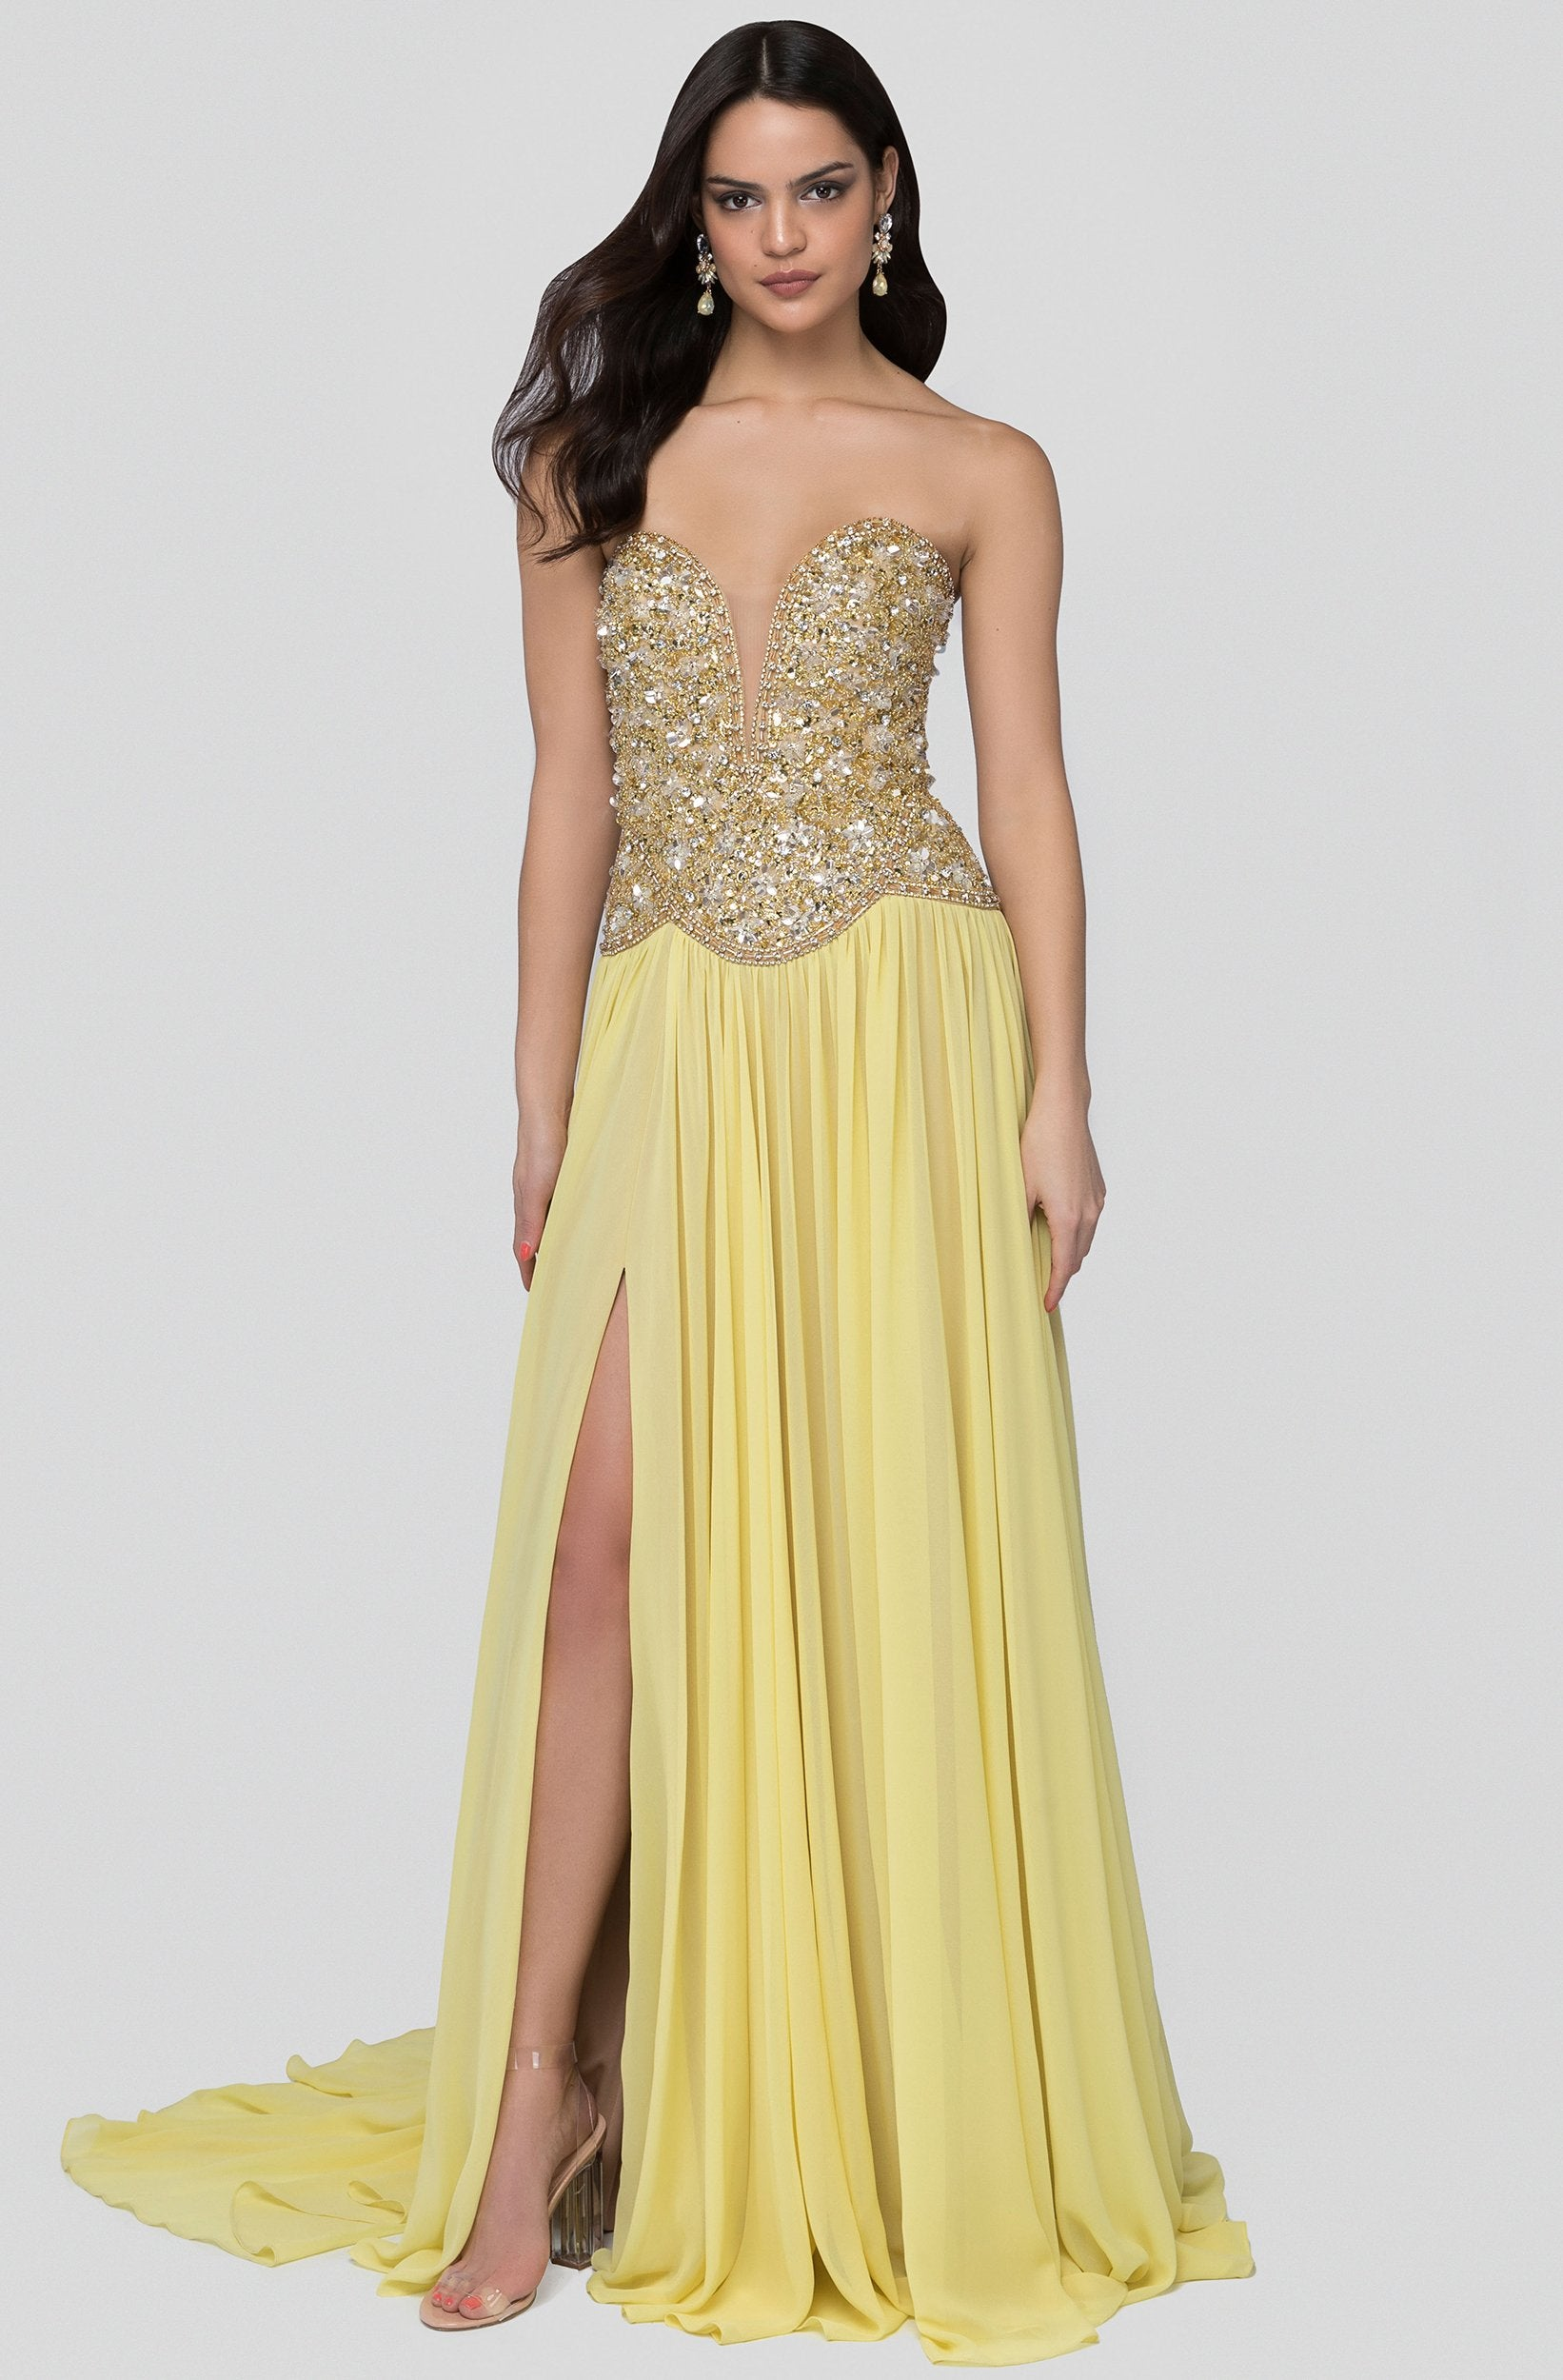 Terani Couture - 1912P8239 Beaded Plunging Sweetheart Dress In Yellow